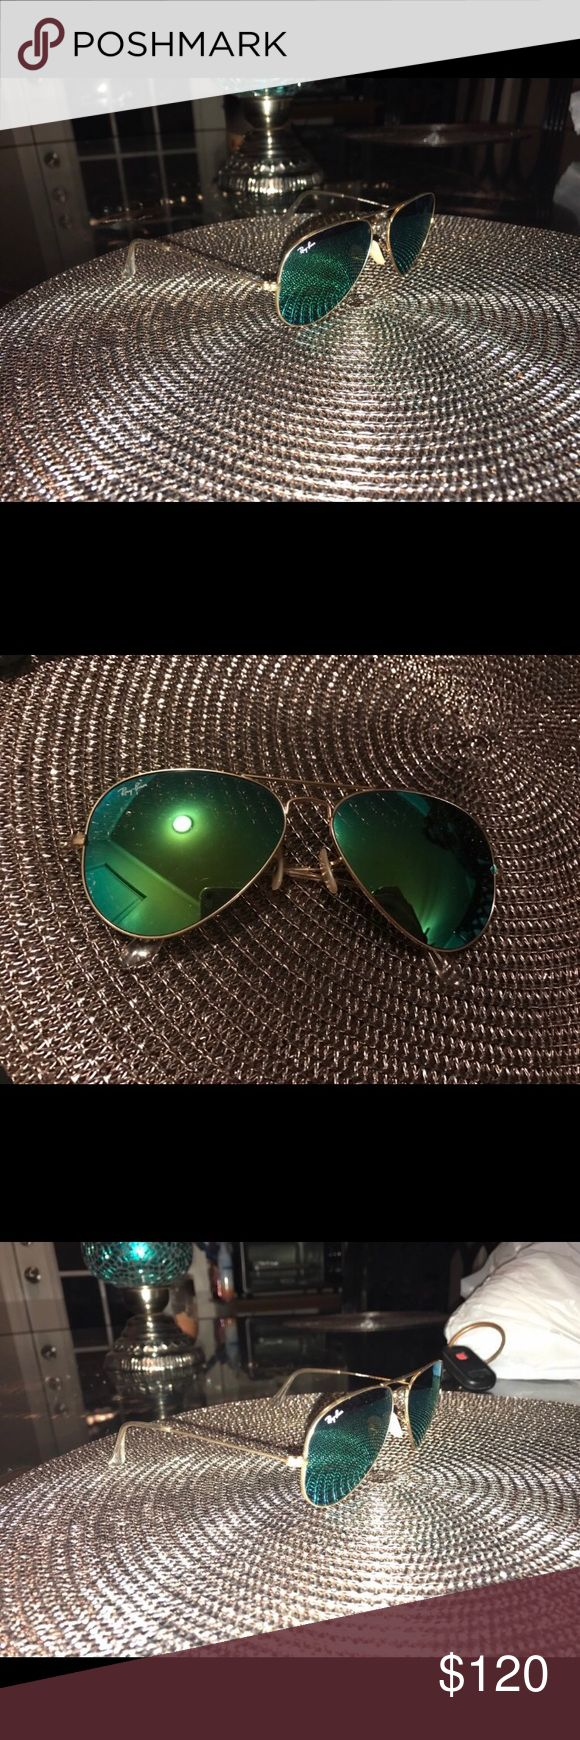 Blue green mirror ray-ban aviators Only worn once or twice, no scratches trying to sell because I'm looking for the smaller size these are too big for my face, these are the standard sized ray-bans. (Price negotiable if reasonable) Ray-Ban Accessories Sunglasses